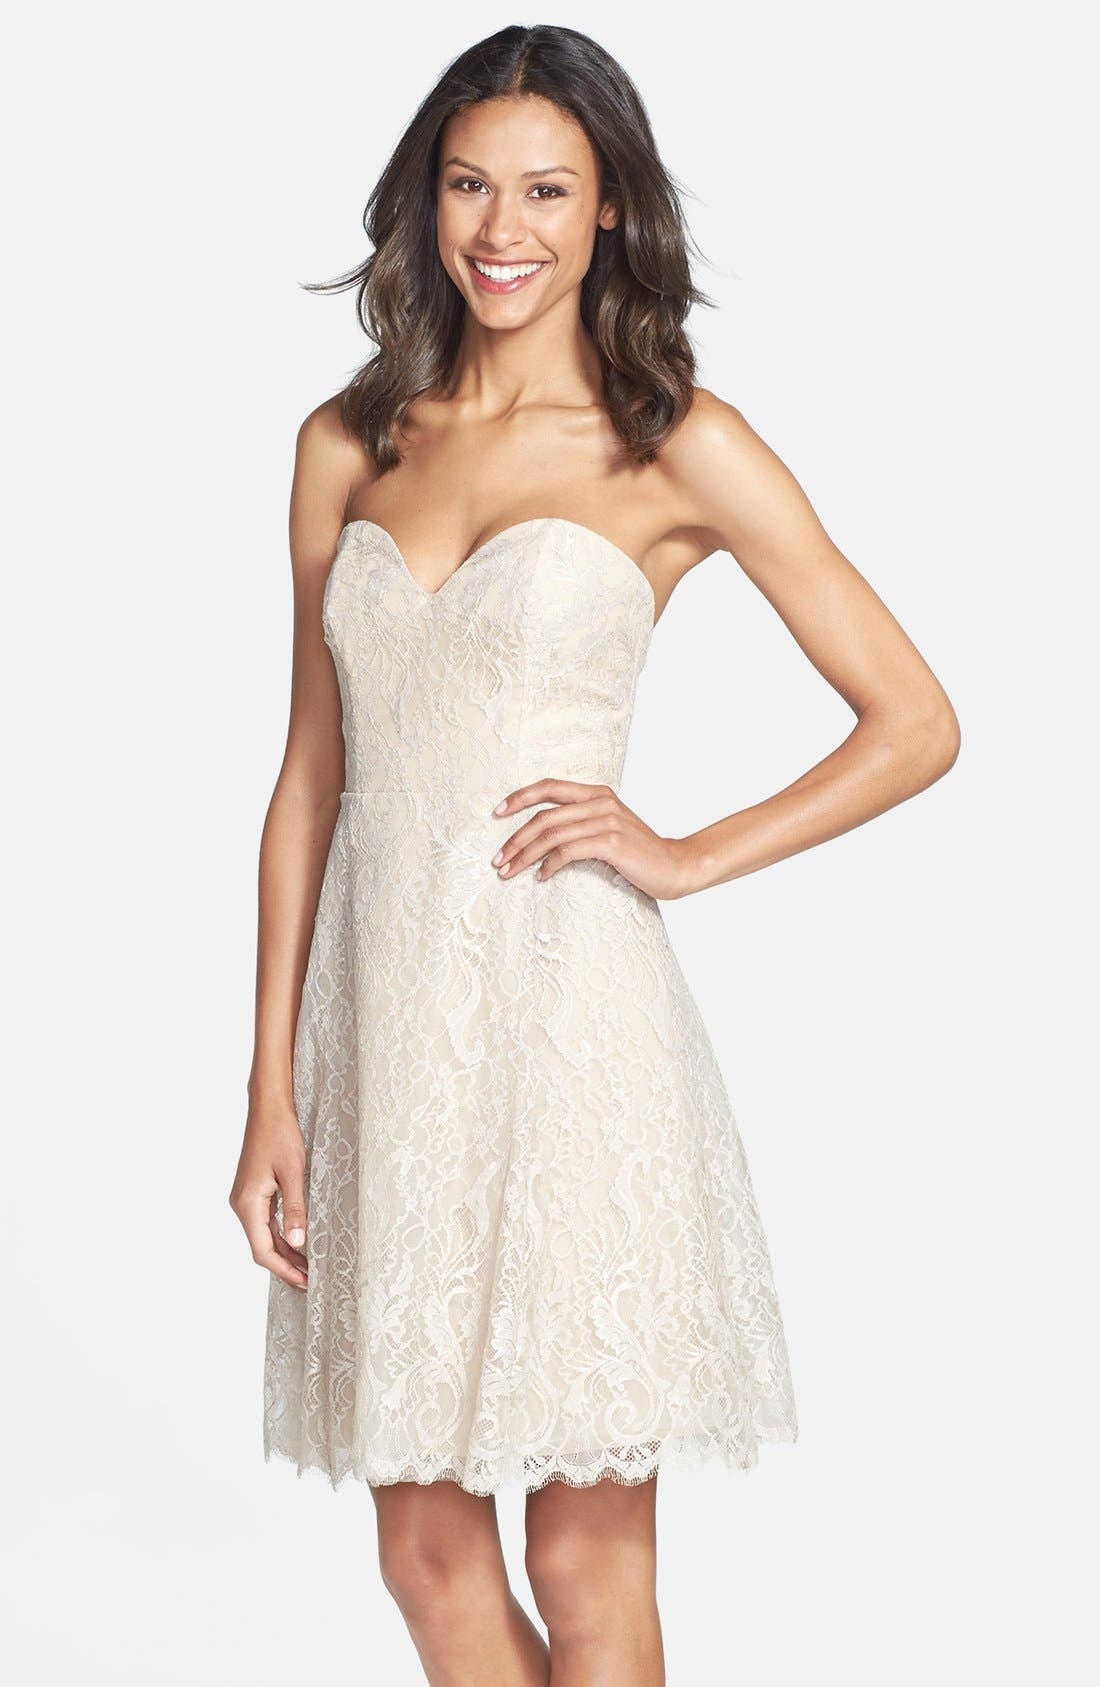 Main Image - Jim Hjelm Occasions Strapless Lace A-Line Dress